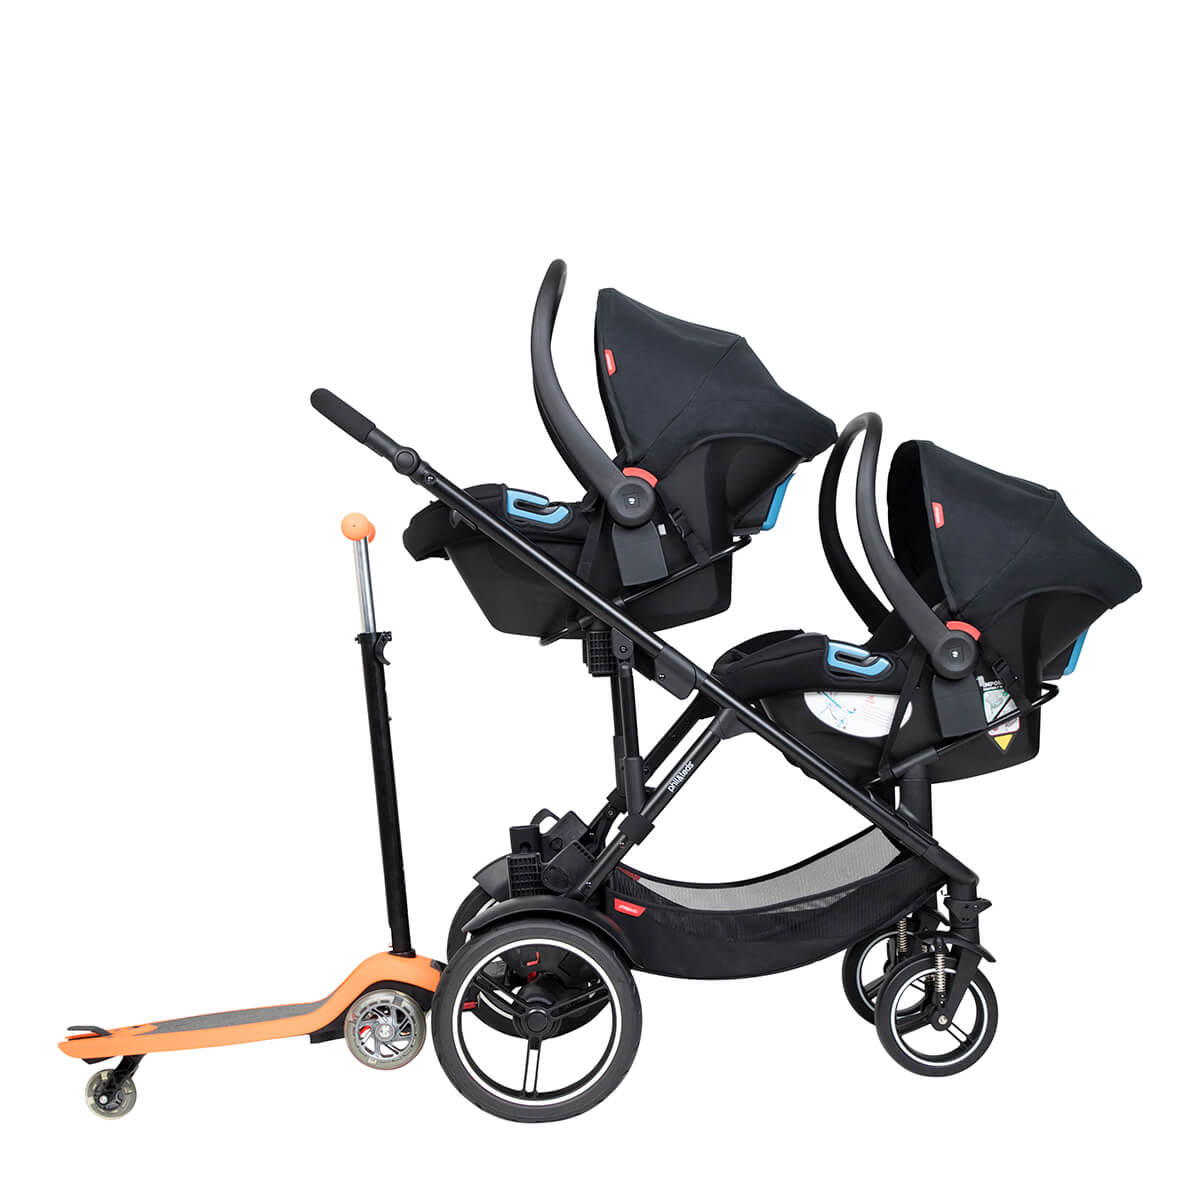 https://cdn.accentuate.io/4509529210968/19272835367000/philteds-voyager-buggy-with-double-travel-systems-and-freerider-stroller-board-in-the-rear-v1626484642278.jpg?1200x1200